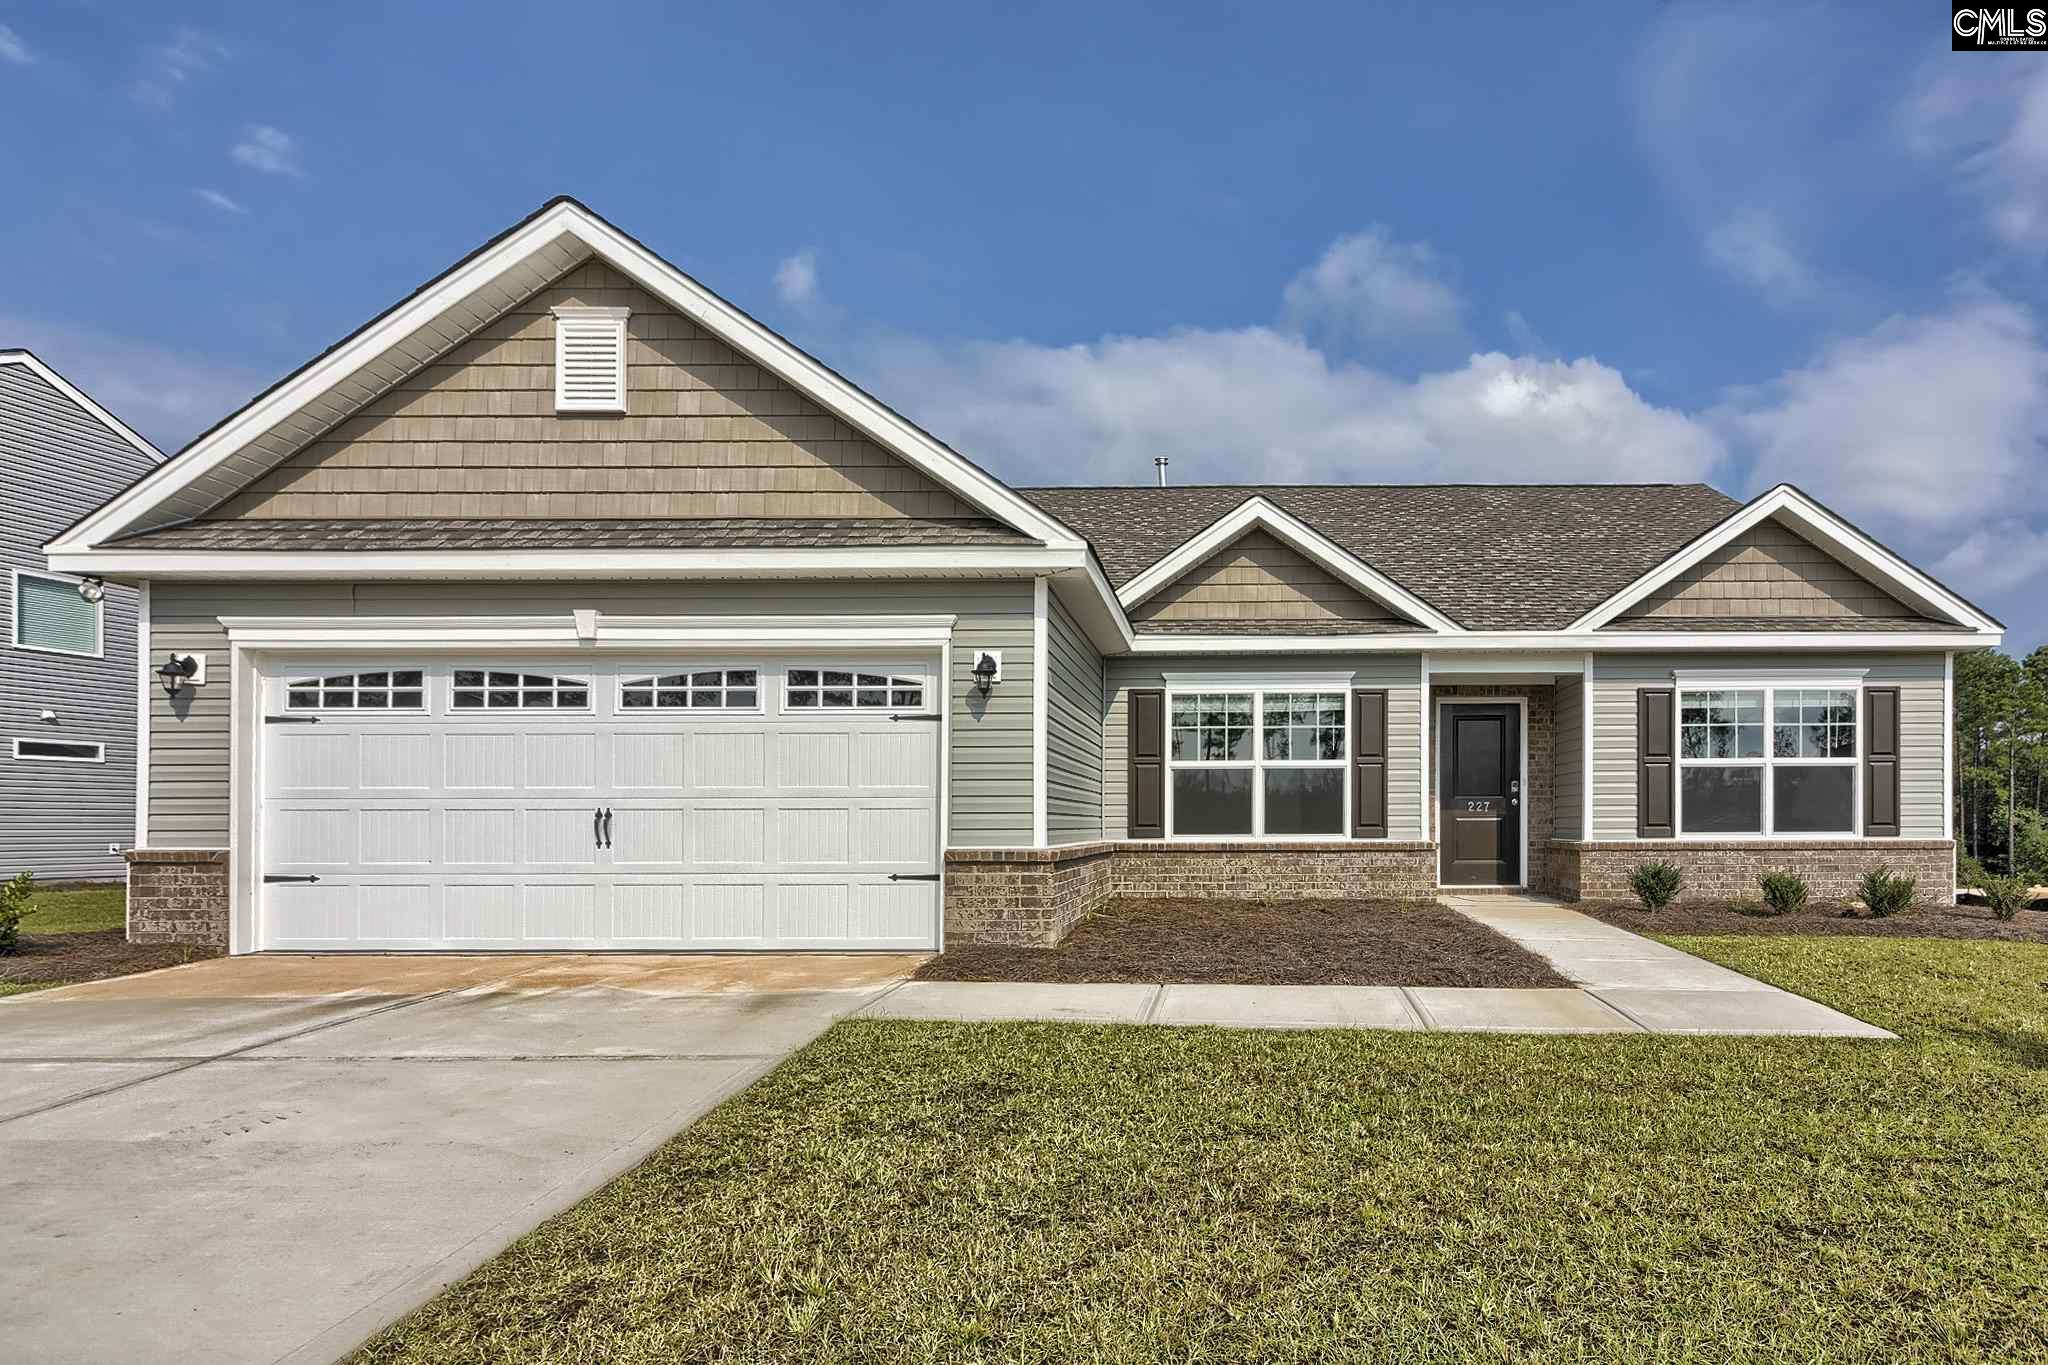 227 Turnfield West Columbia, SC 29170